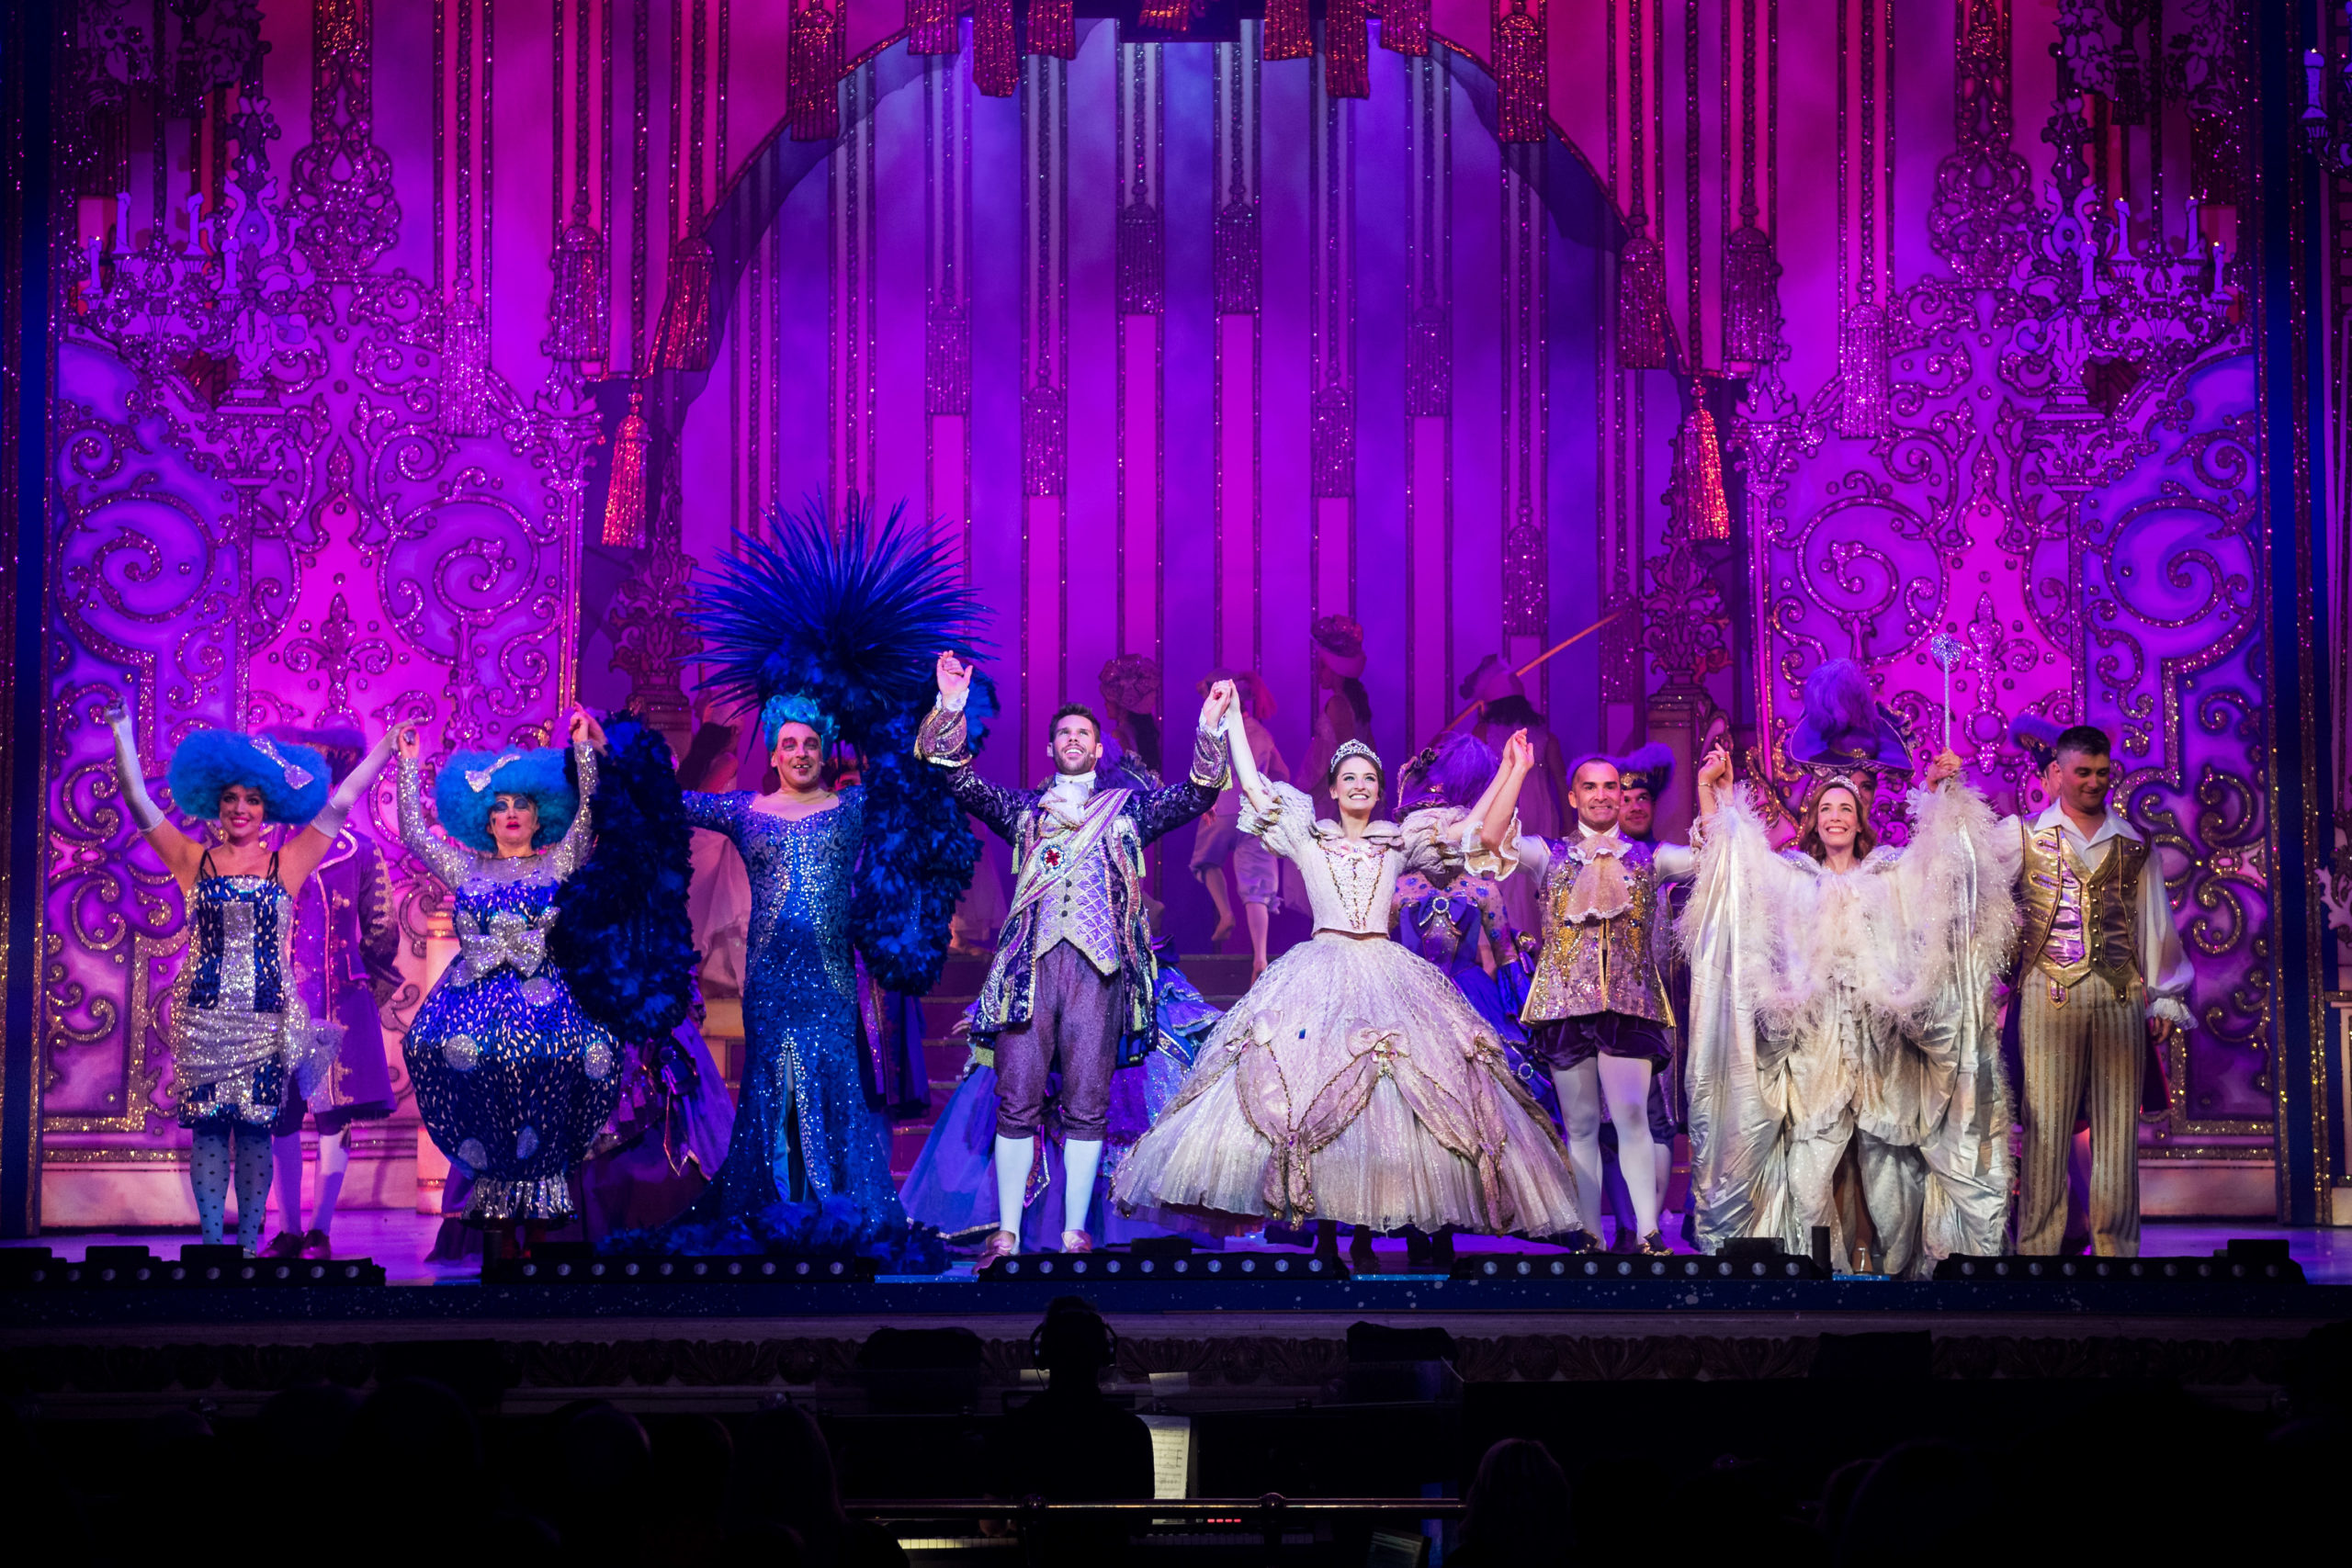 Cinderella, HMT's panto in 2019. It has been months since audiences have been able to enjoy live shows.